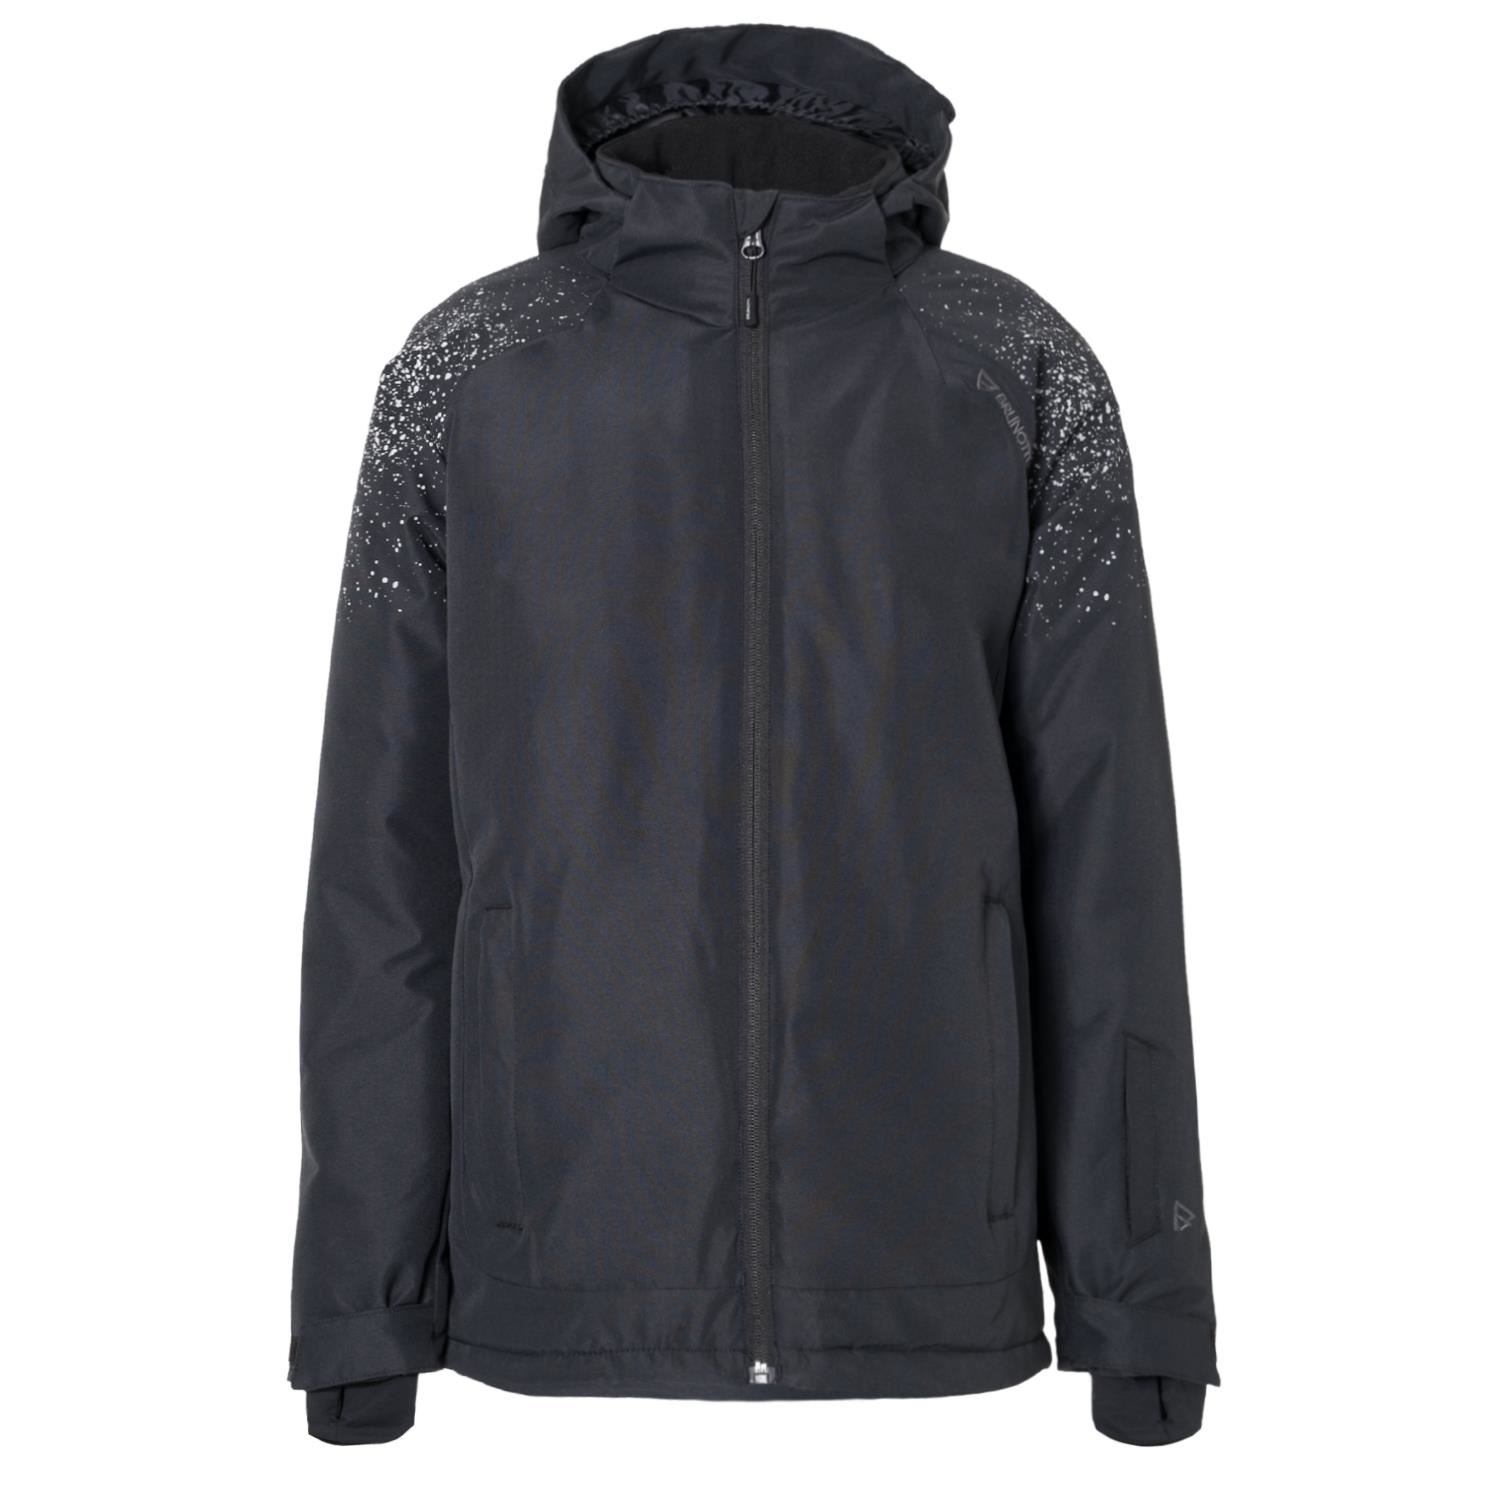 Brunotti Sadler JR Boys Snowjacket